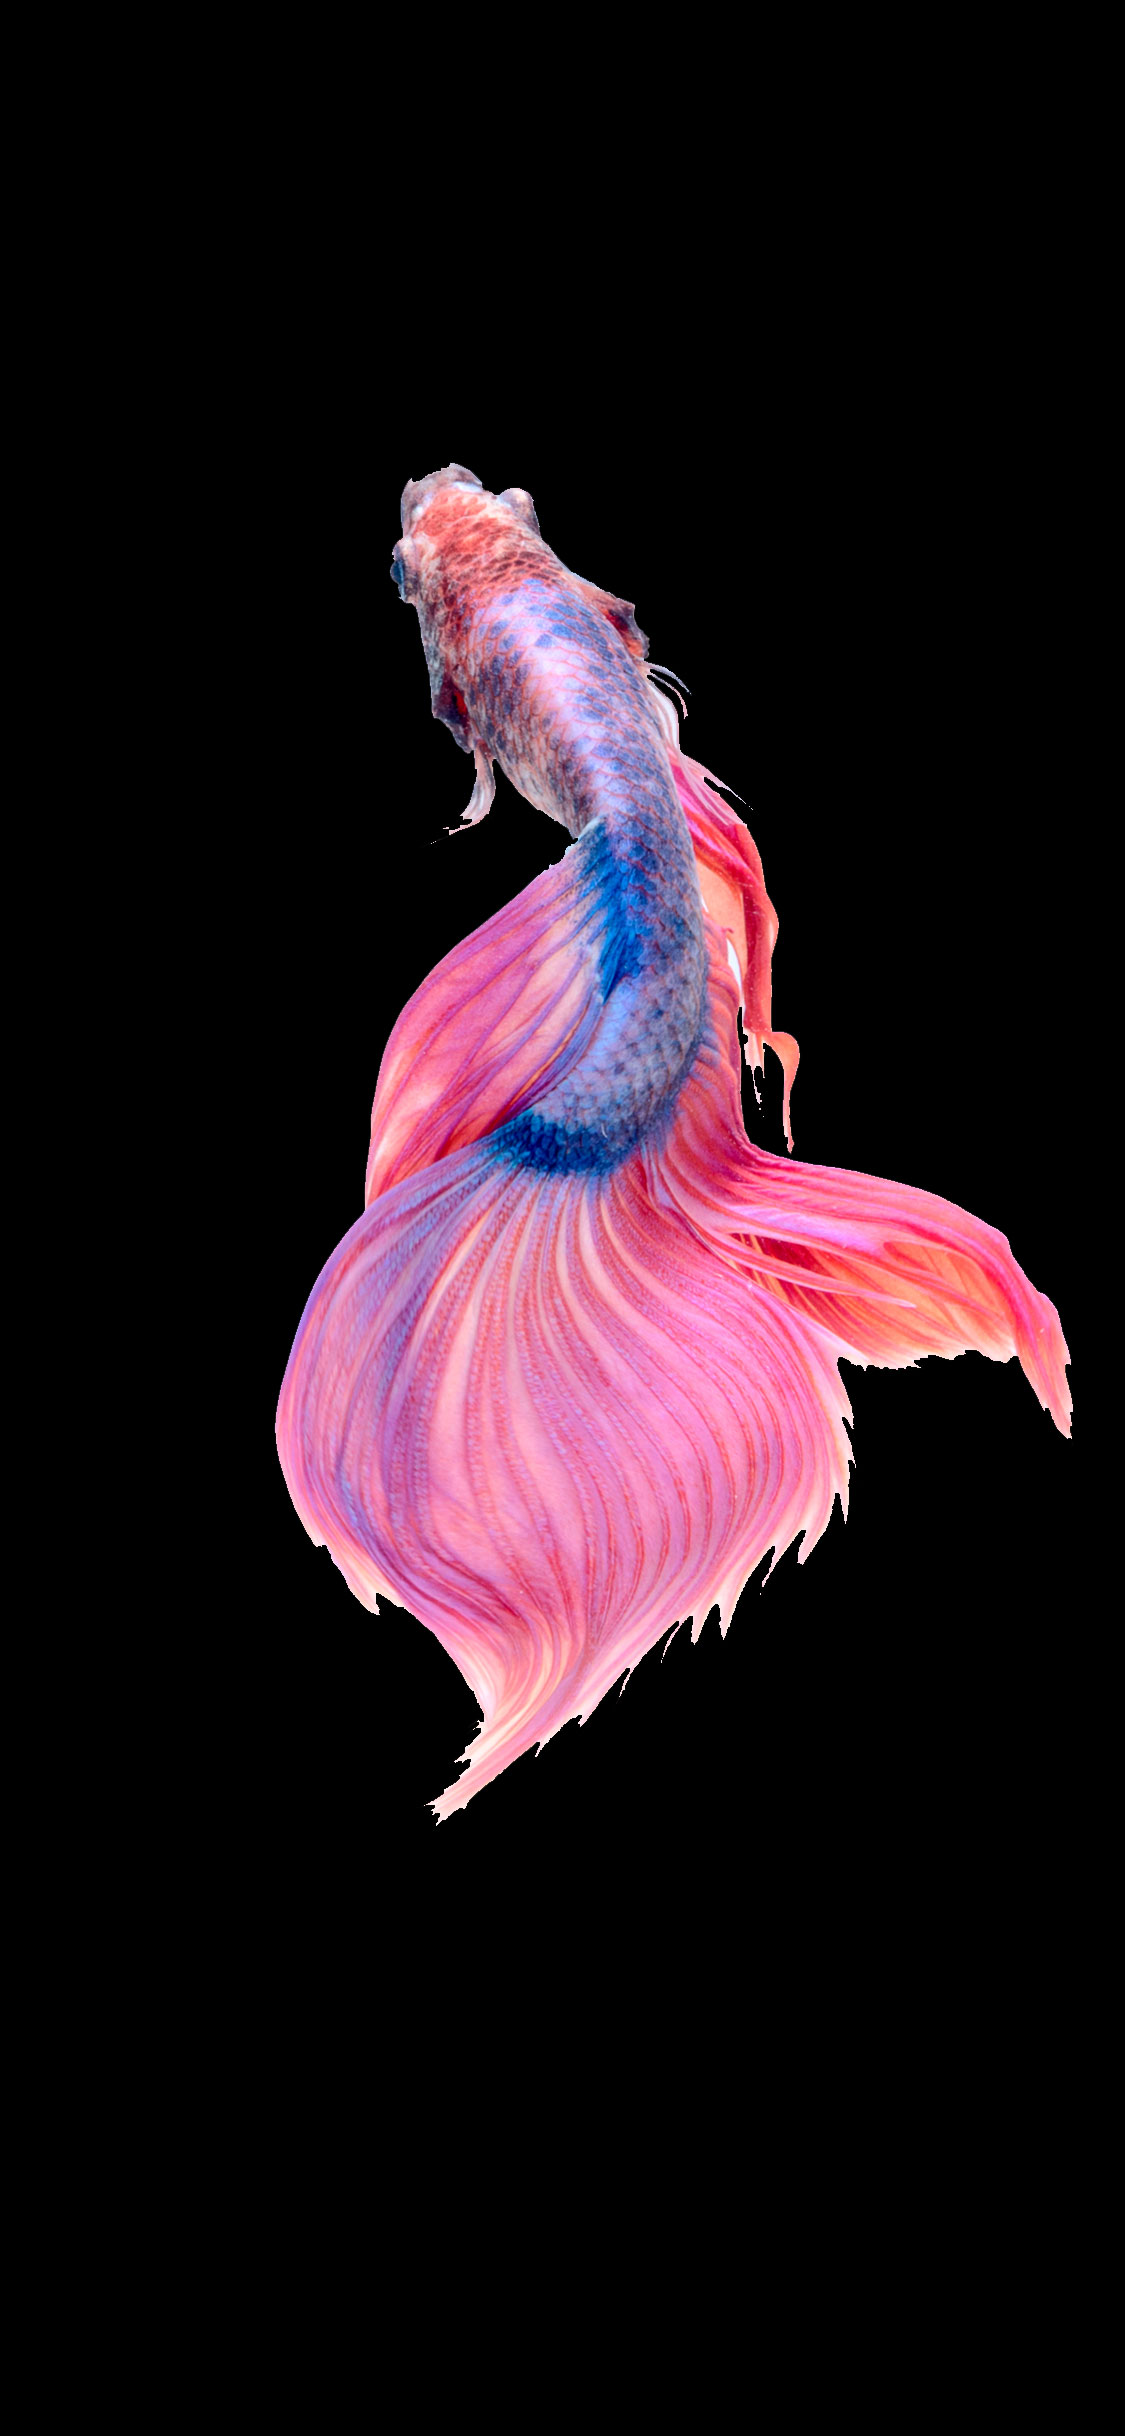 iPhone wallpaper fish pink Fish